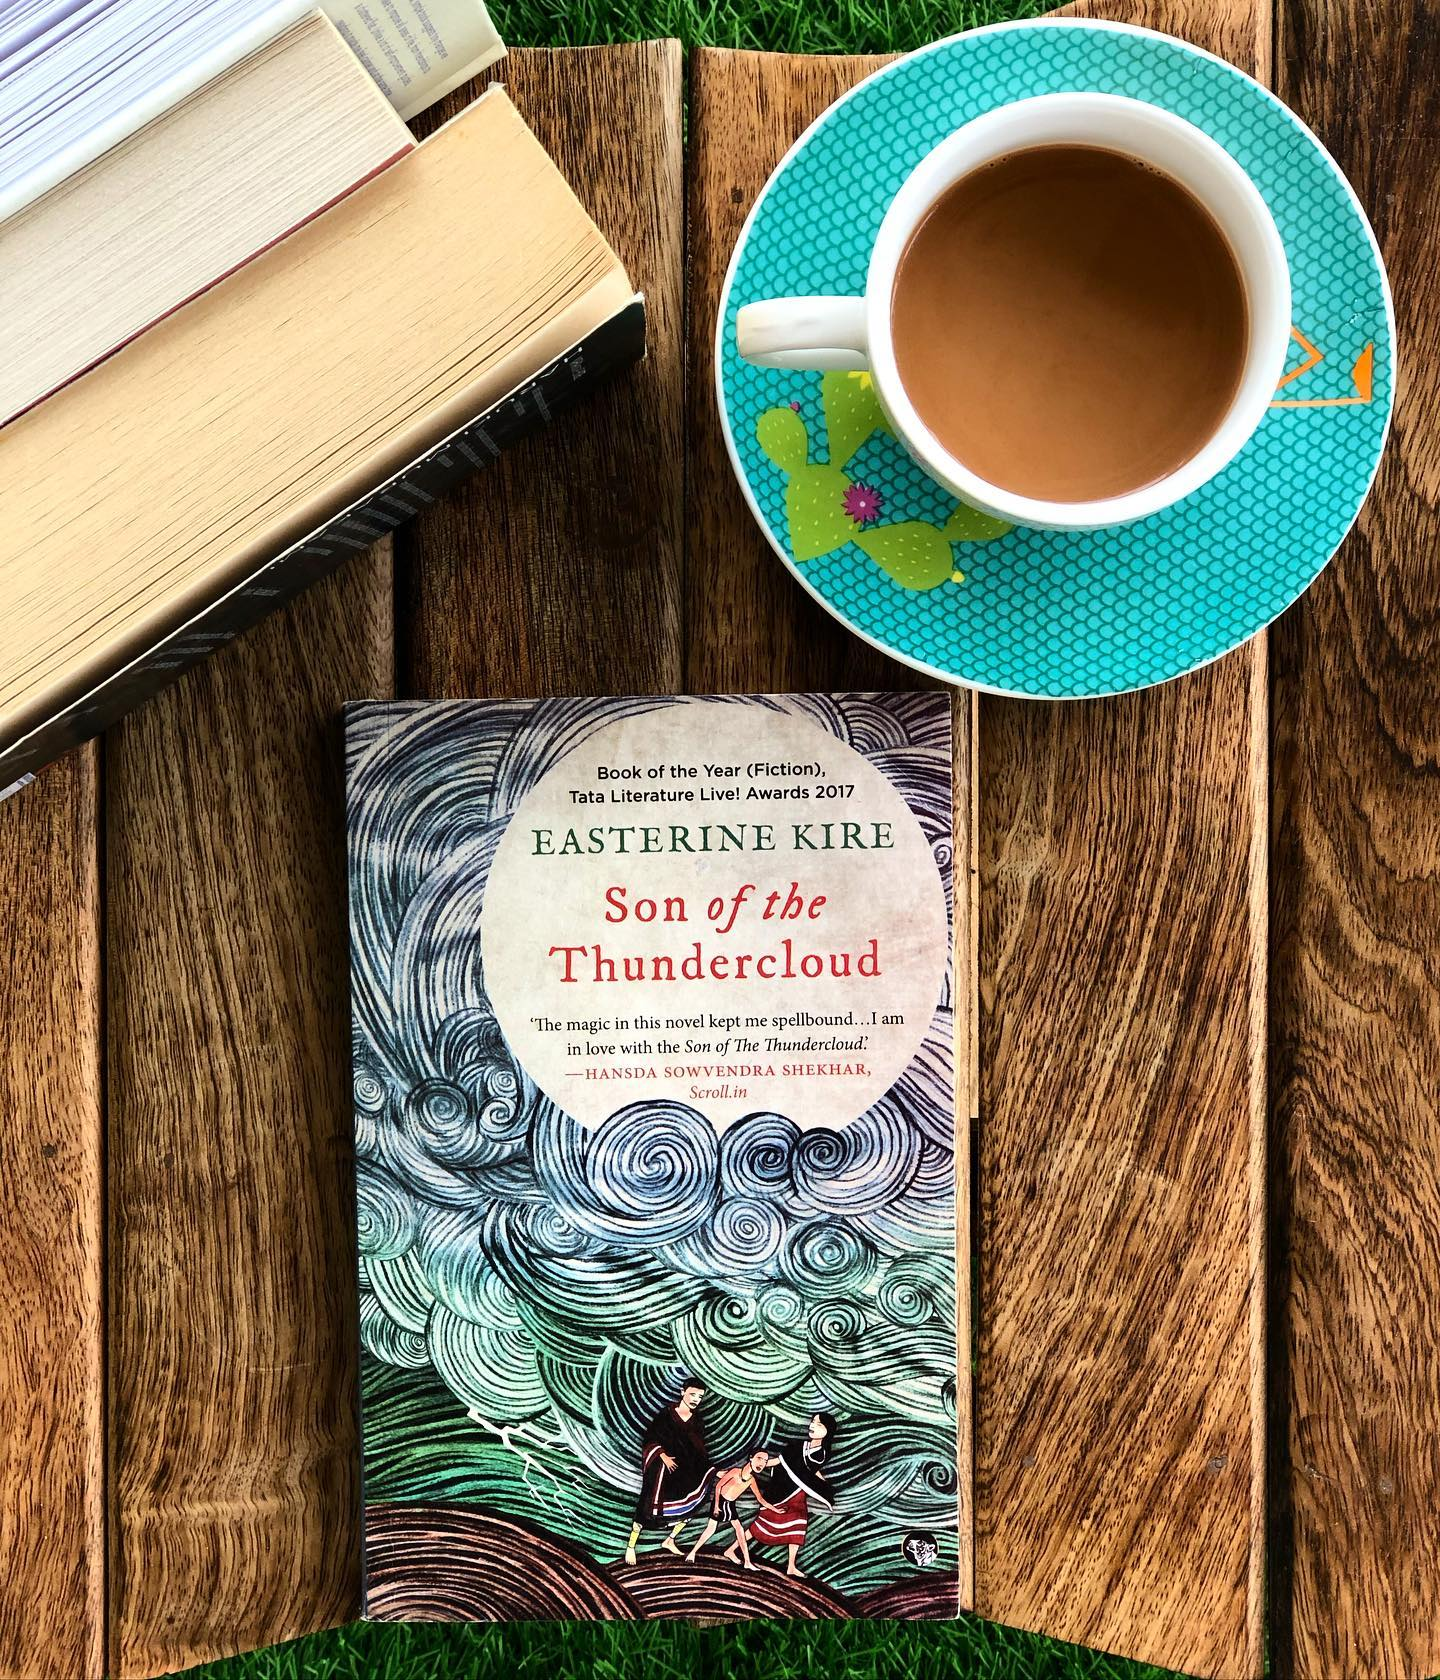 Son of the Thundercloud by Easterine Kire